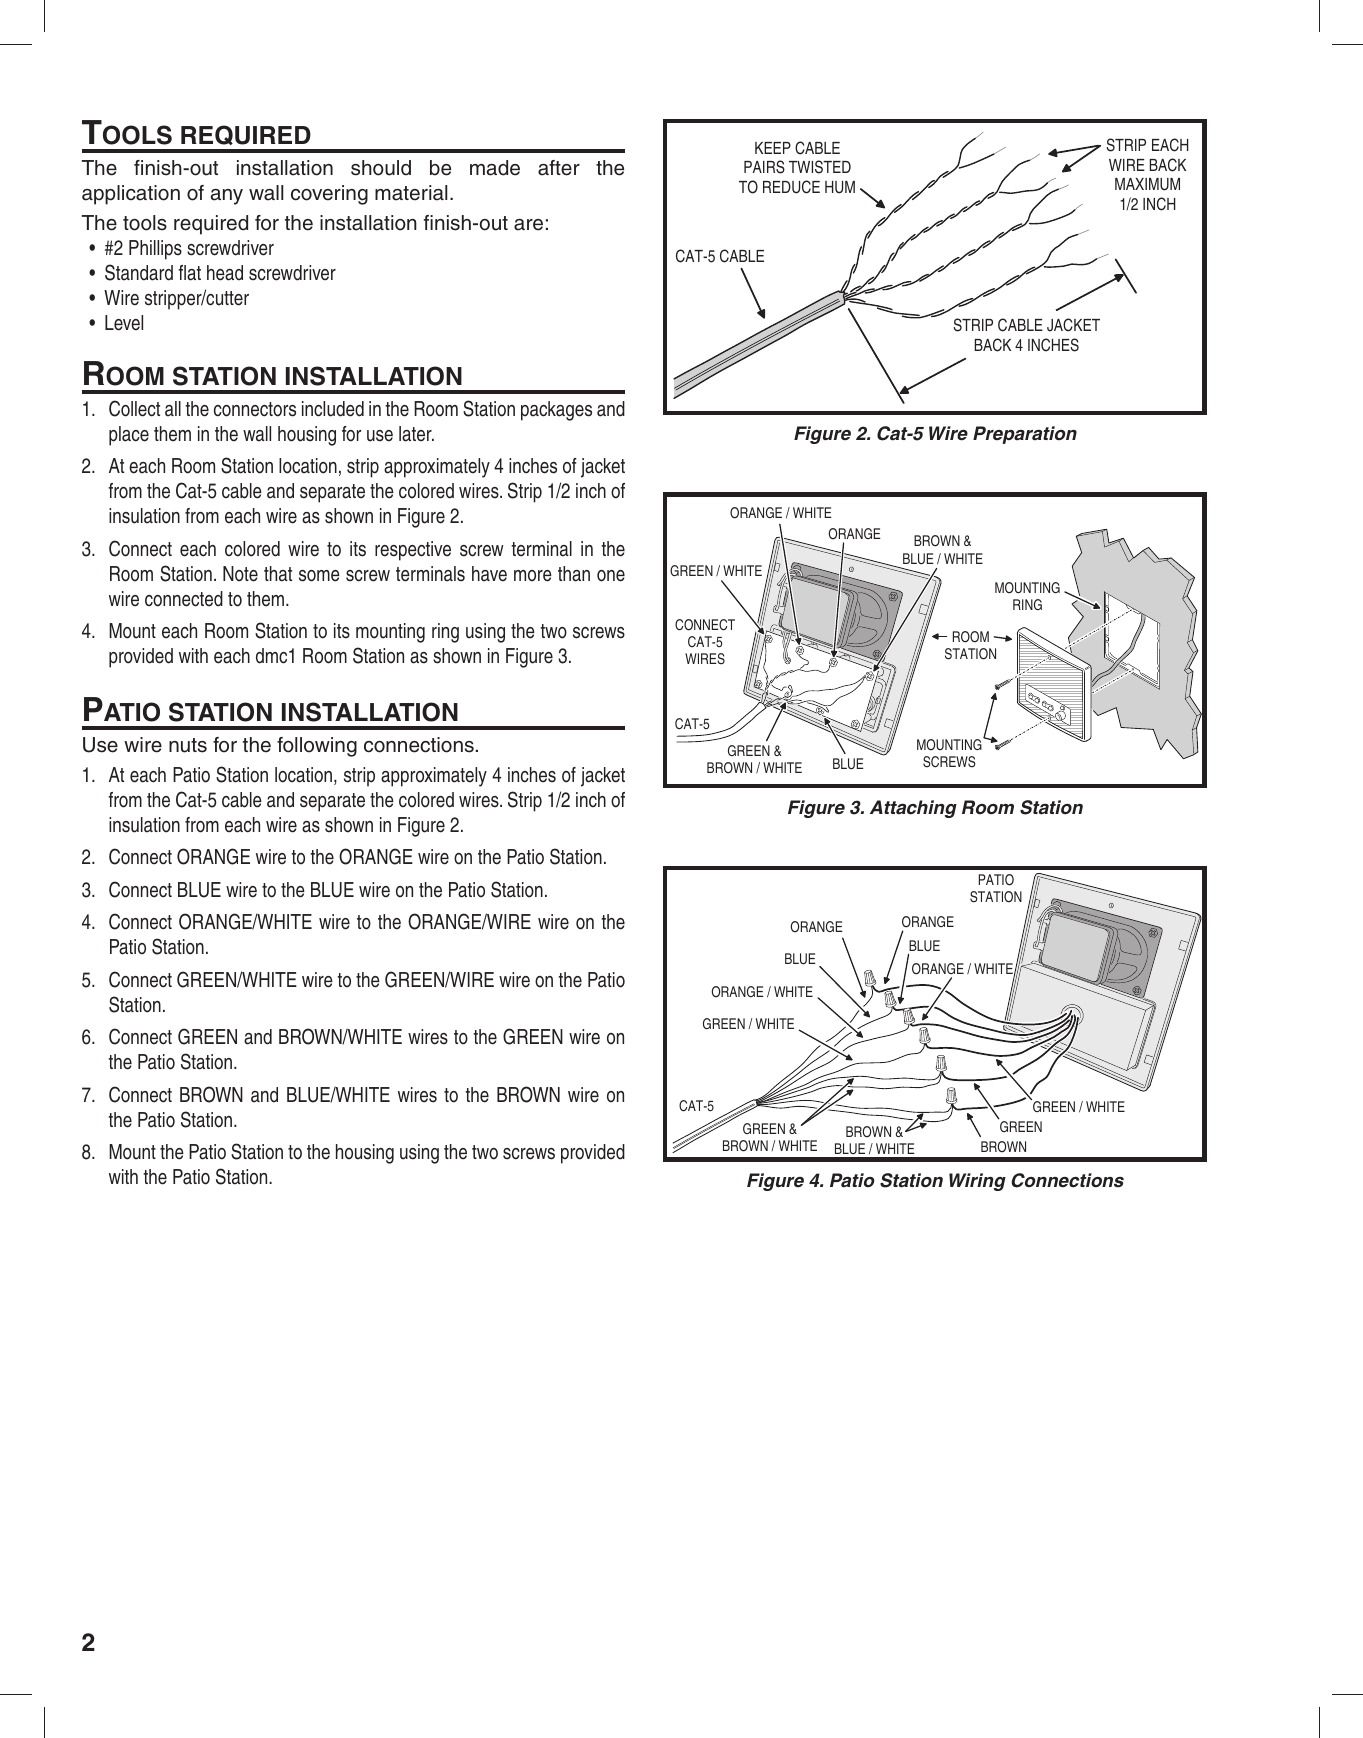 Linear Dmc1 Musiczcommunication System Master White Quick Start Wiring Diagram Page 4 Of 12